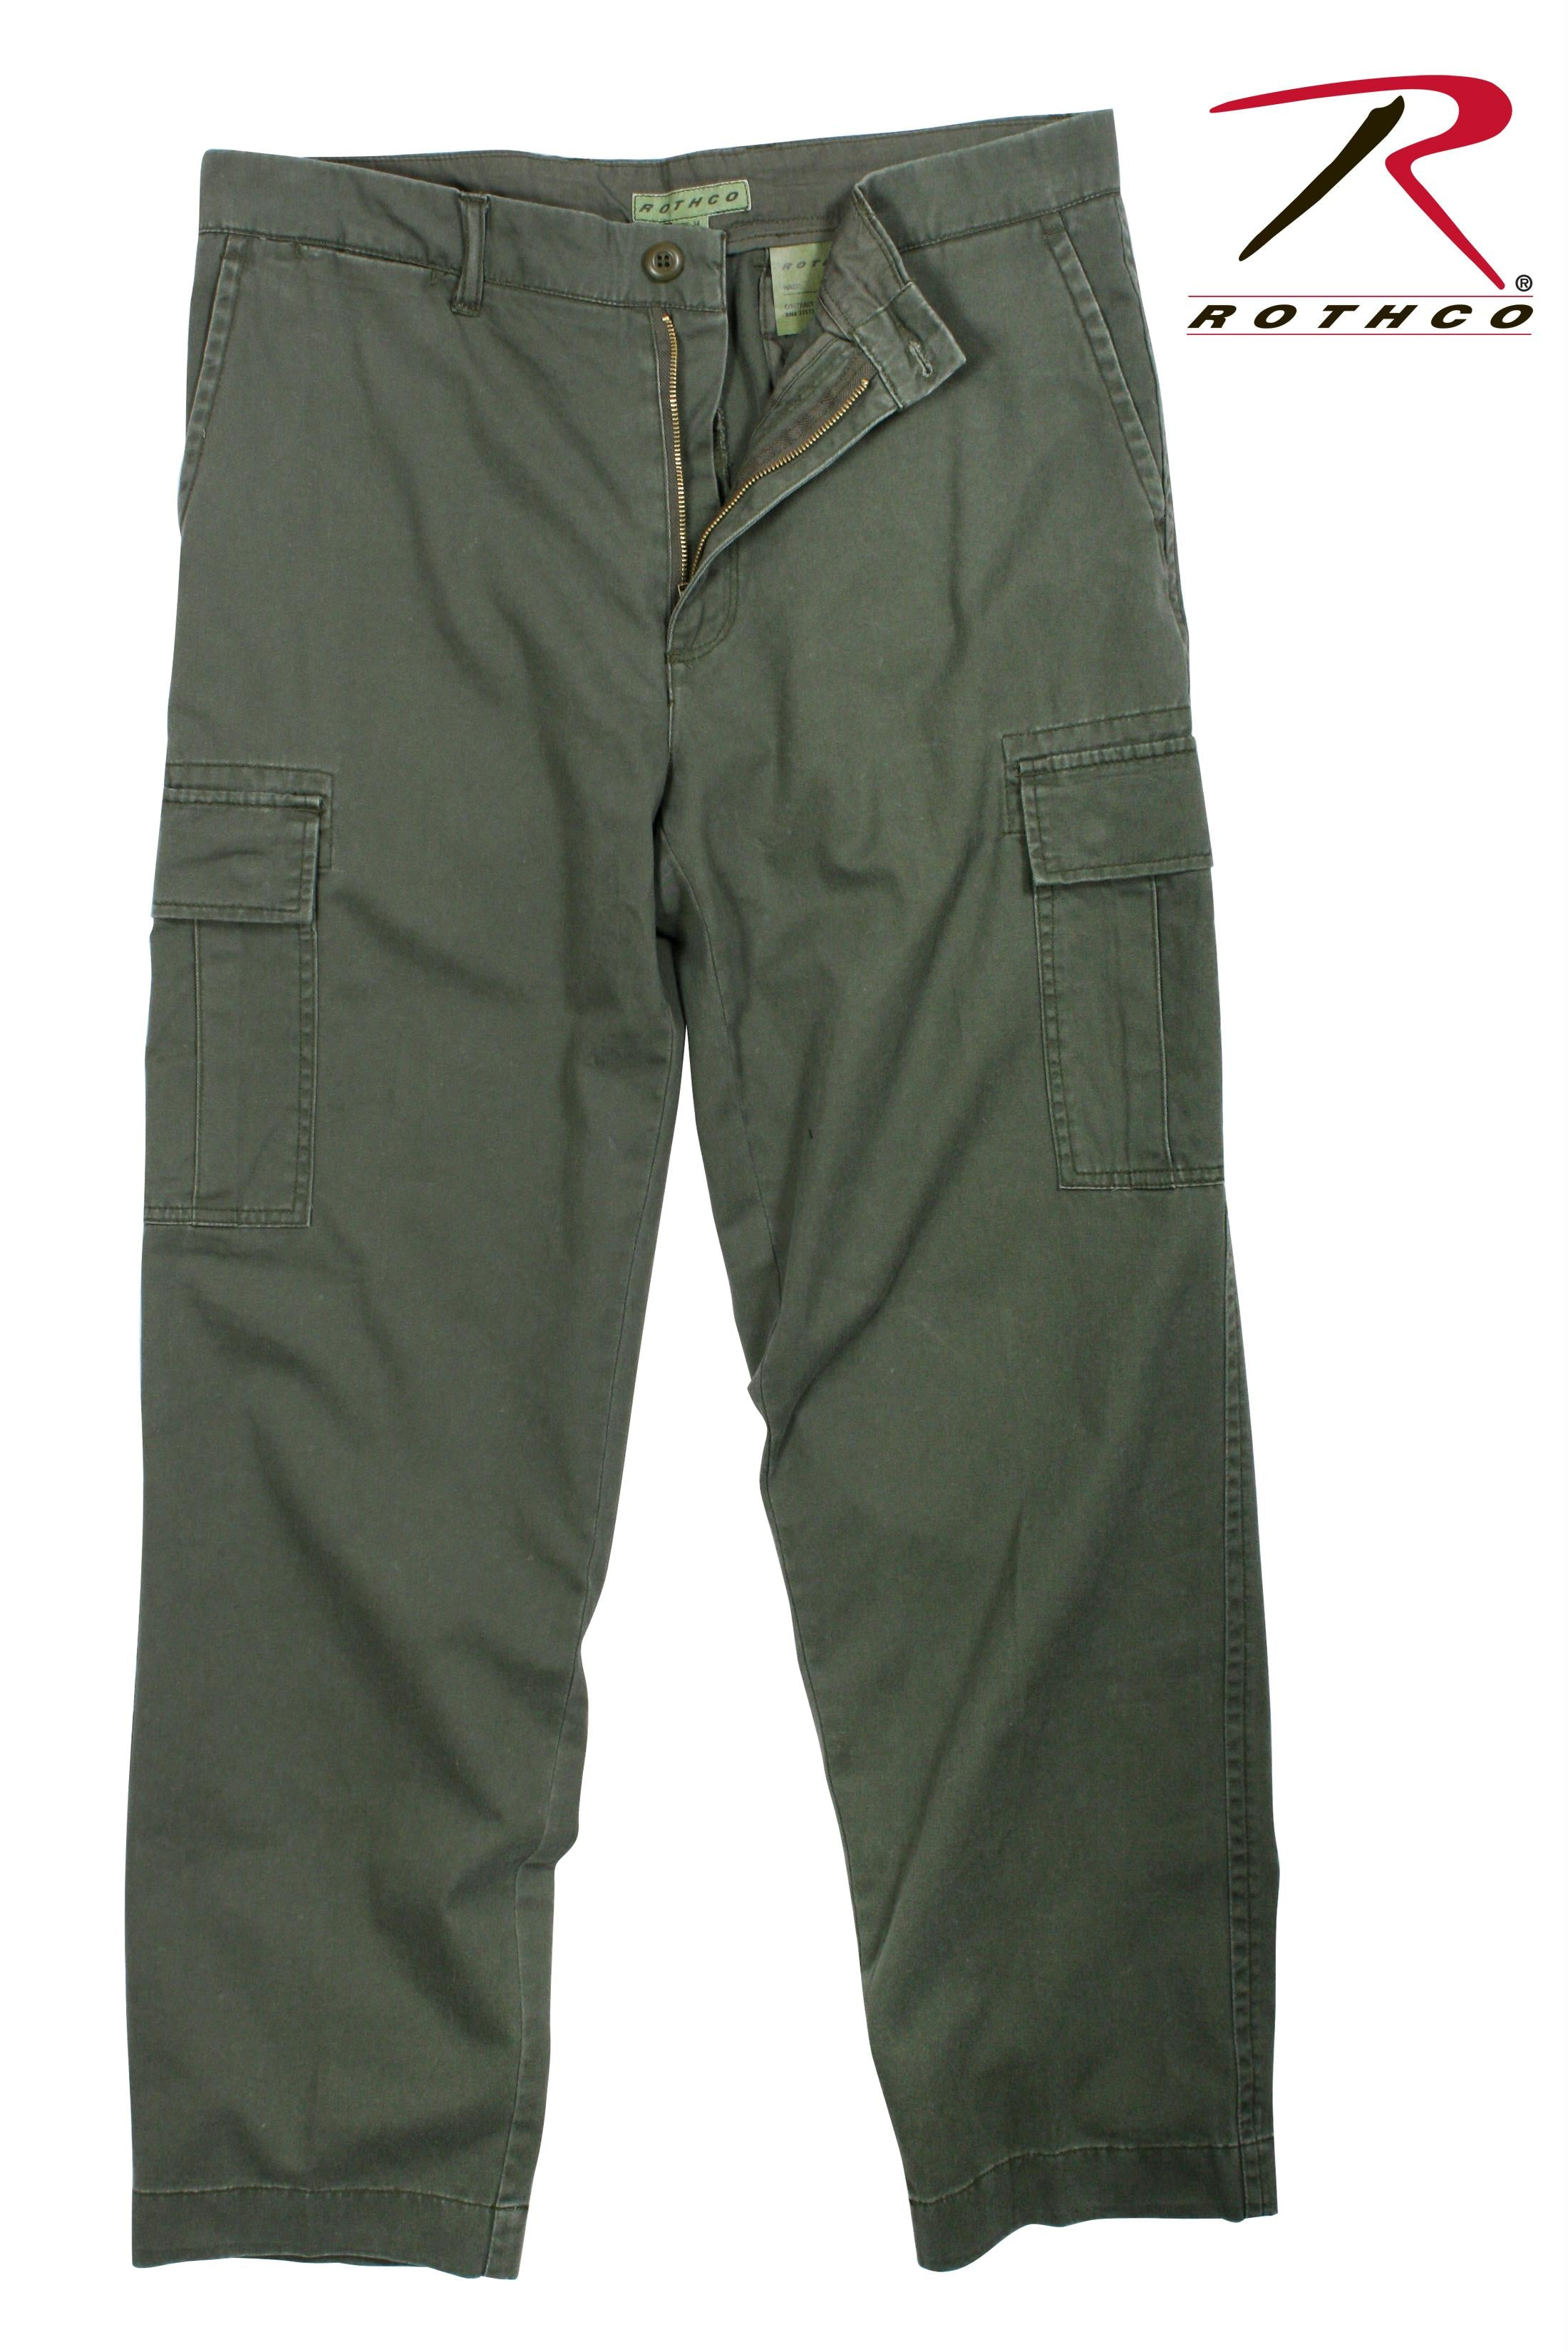 Rothco Vintage 6-Pocket Flat Front Fatigue Pants - Olive Drab / 40